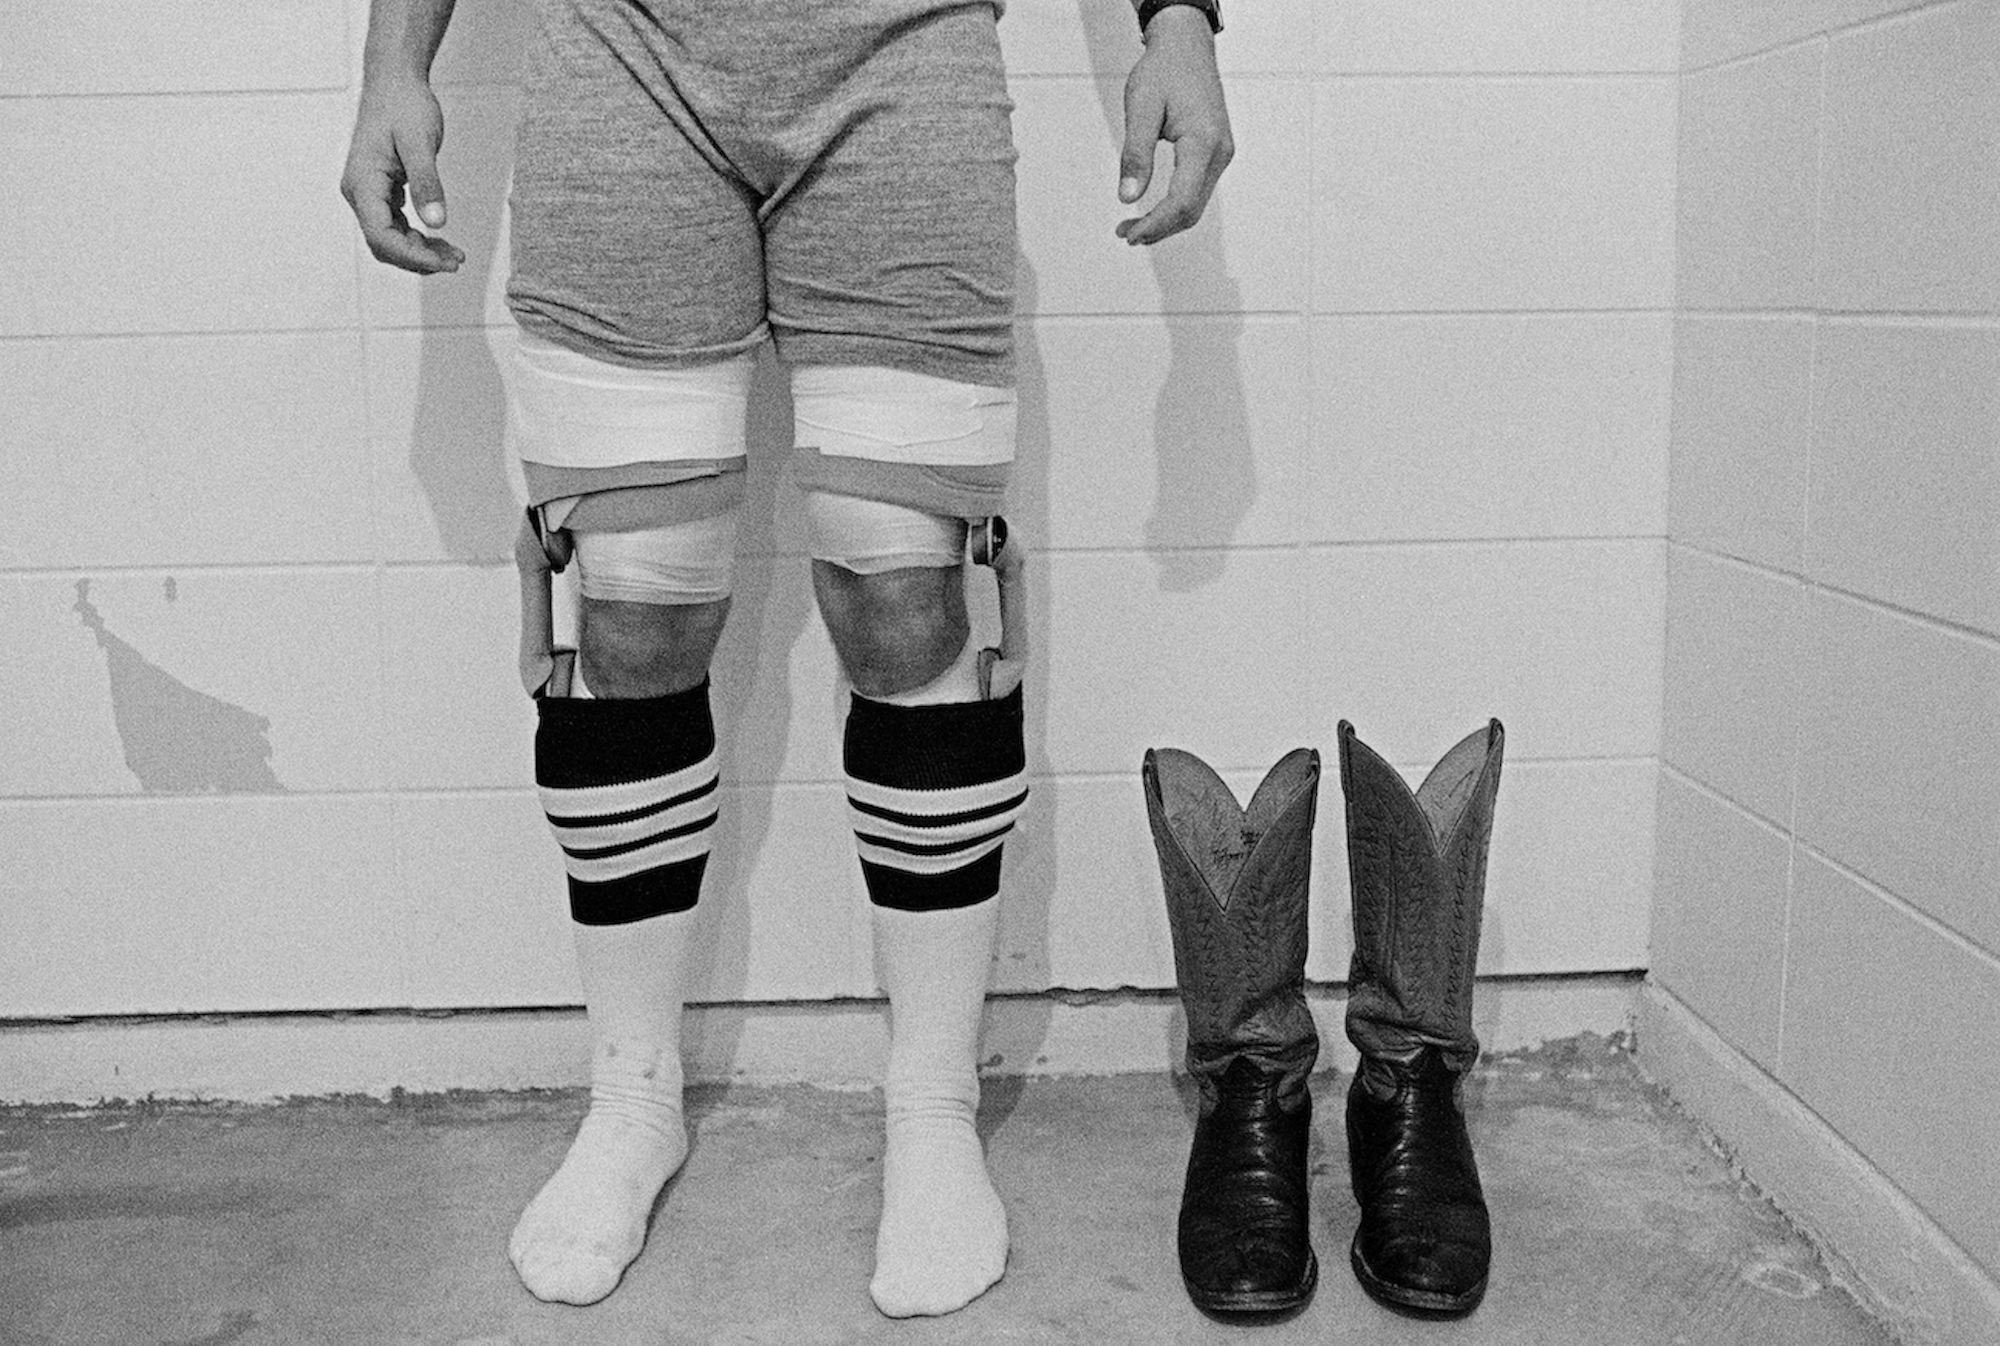 Black-and-white photo showing man's legs with socks and knee braces and his shoes next to him